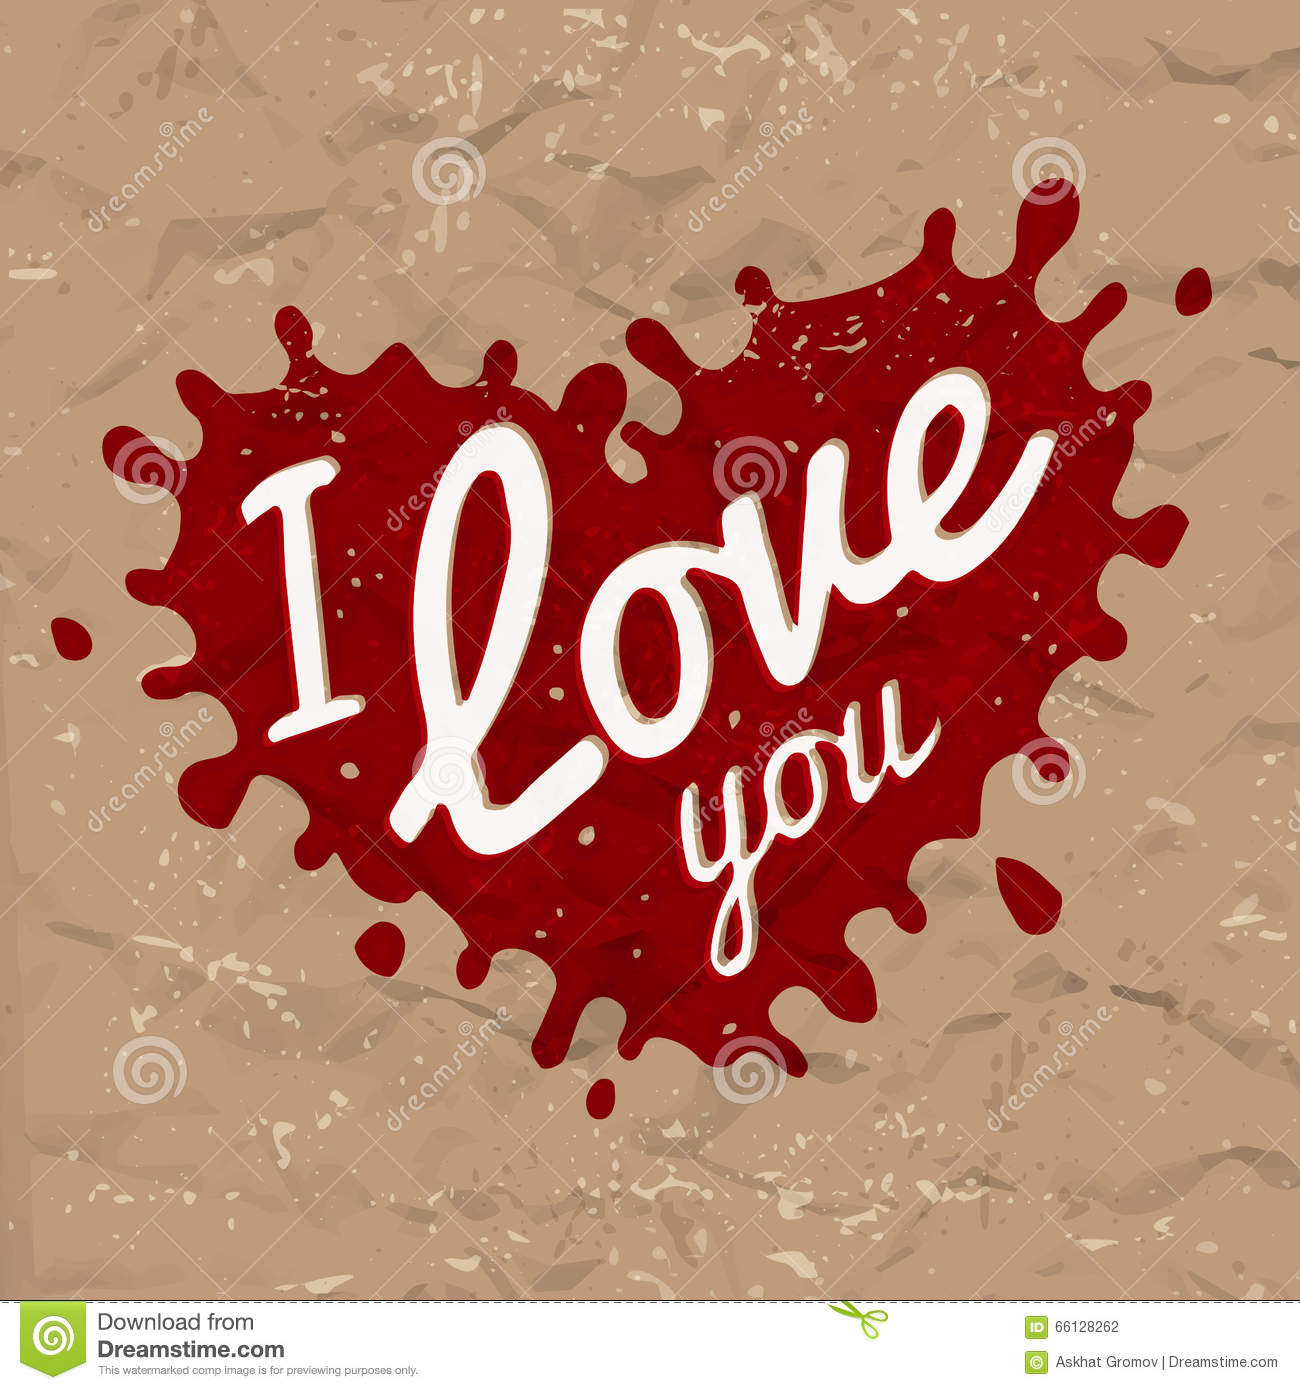 I Love You Lettering In Splash Vector Design Retro Heart Shape